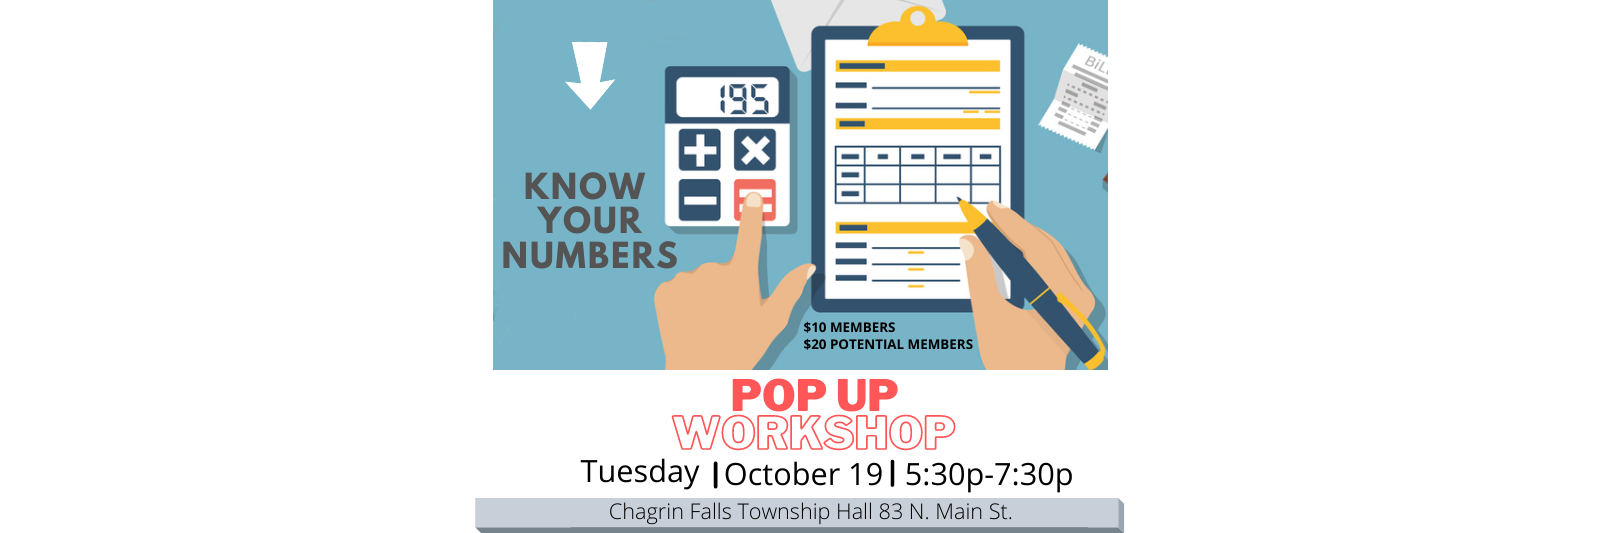 KNOW-YOUR-NUMBERS-banner-(1600-x-533-px).png